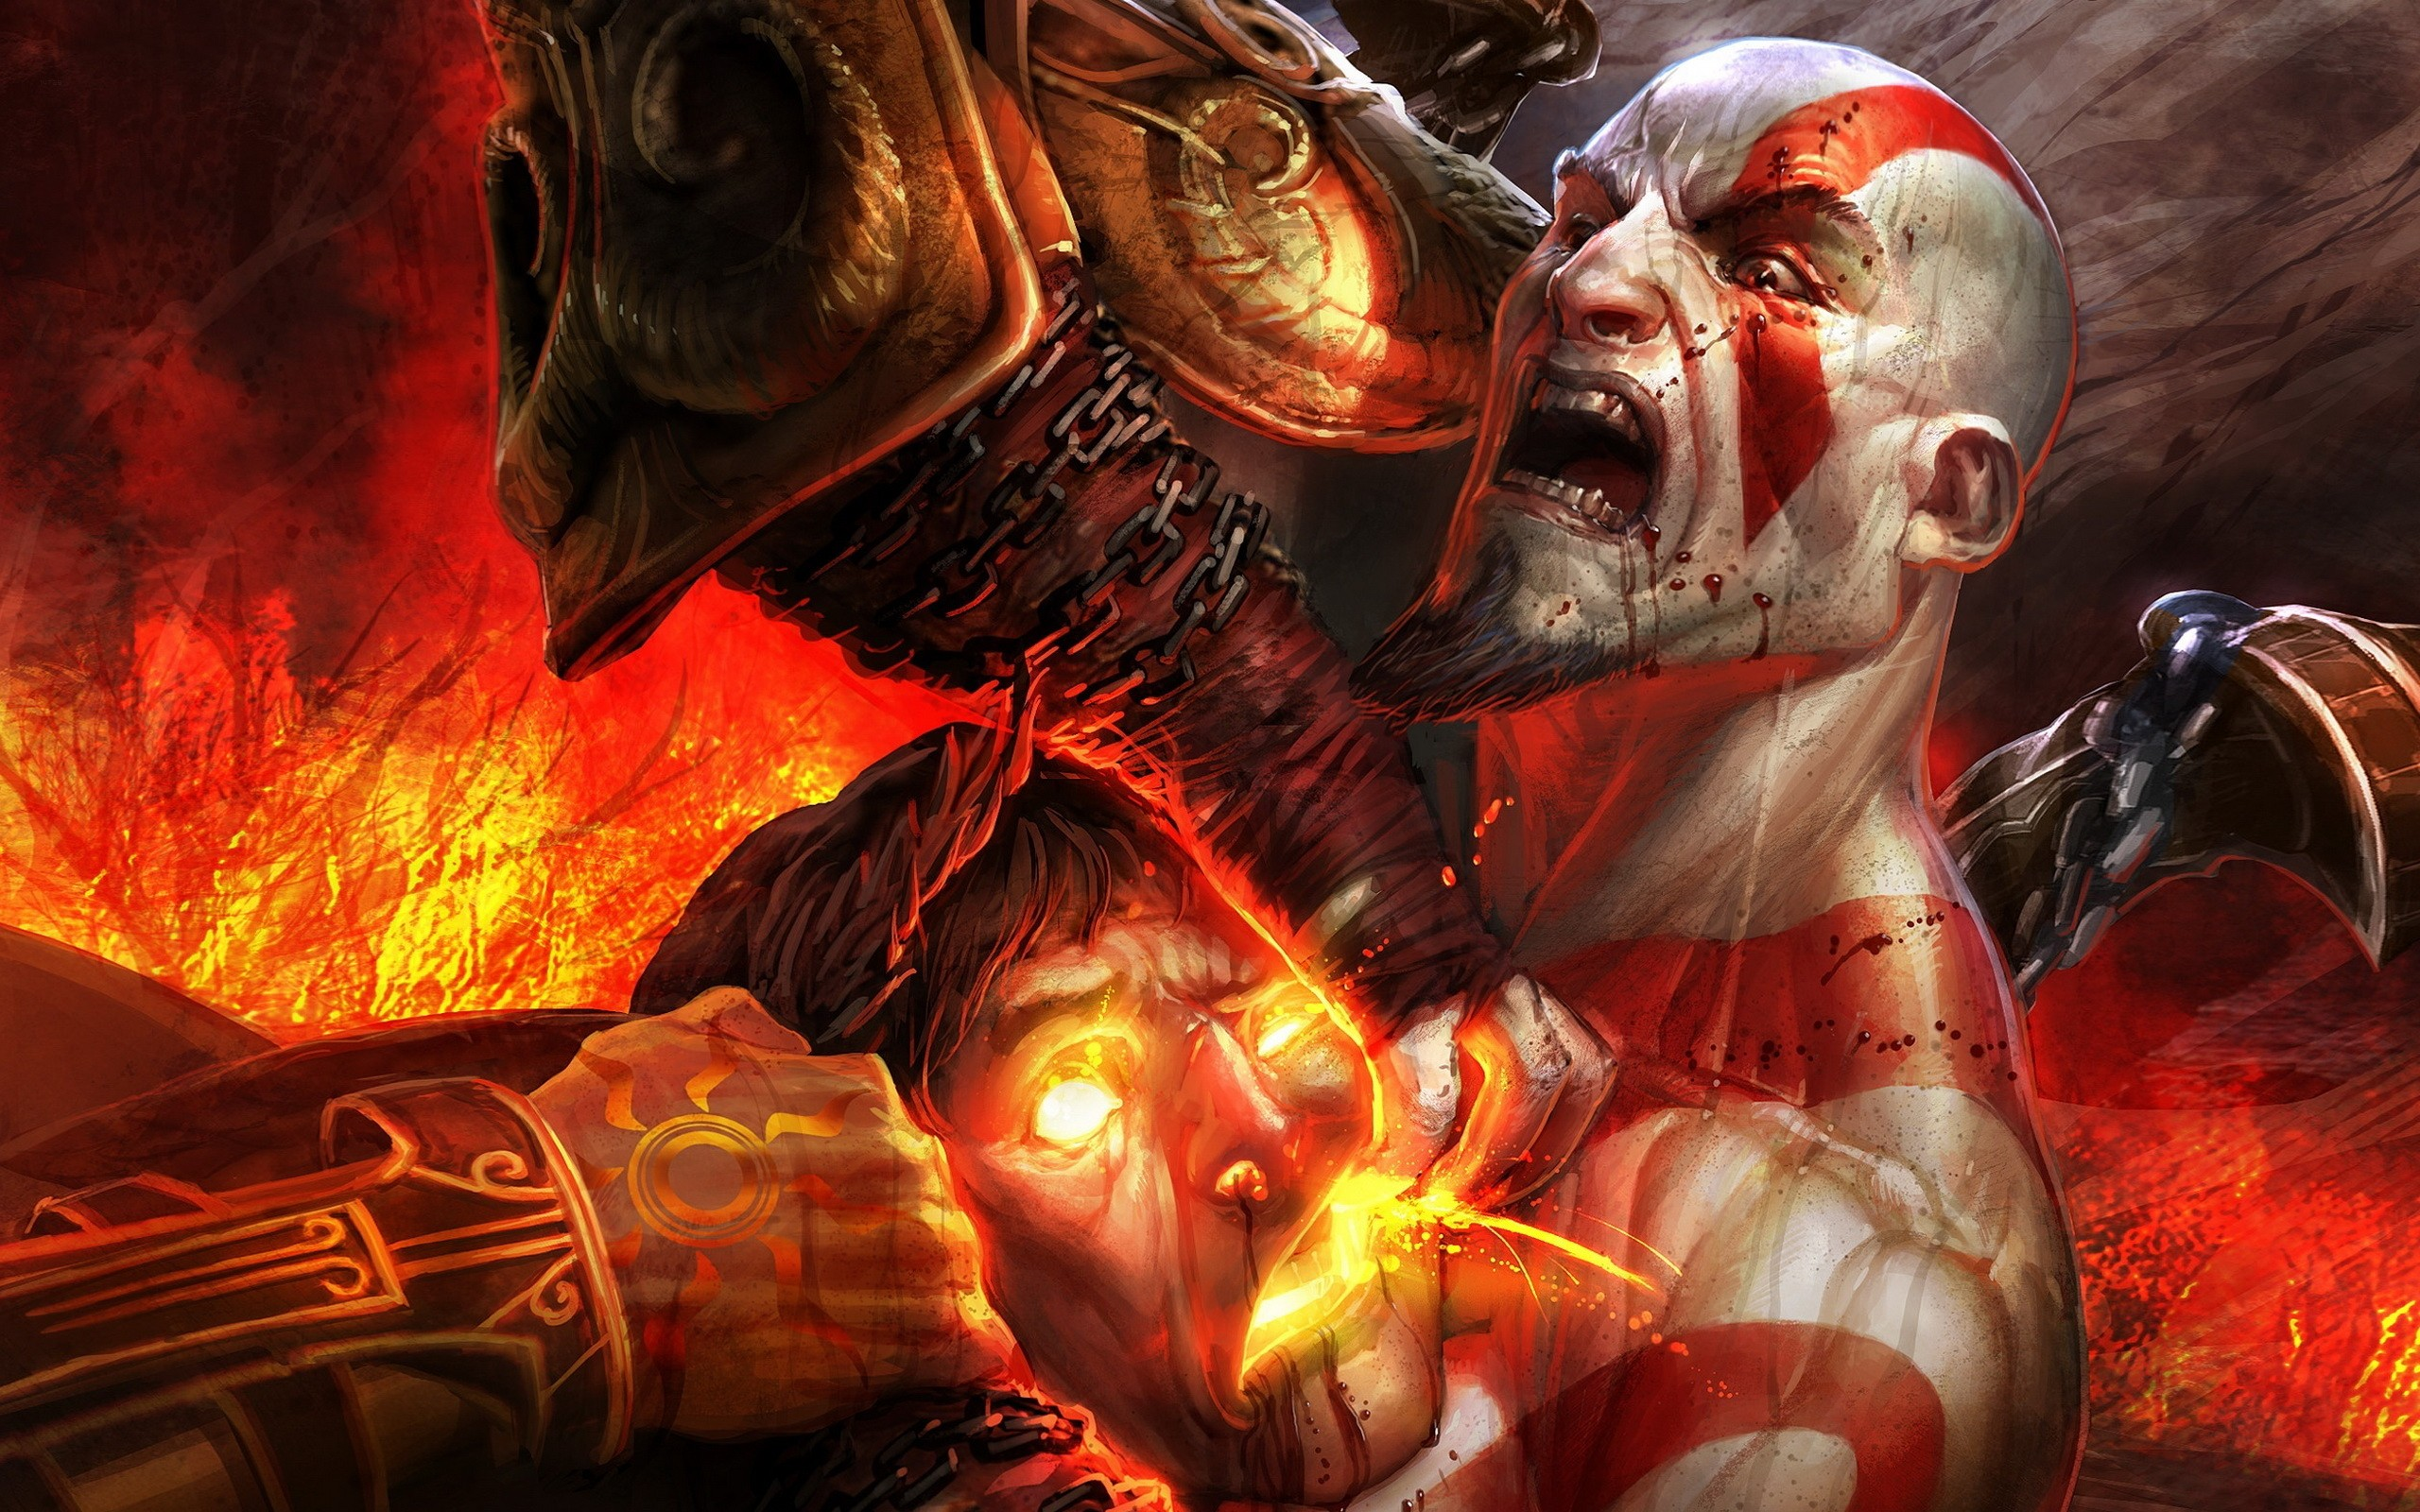 Kratos, the protagonist of the game God Of War, Art Wallpaper